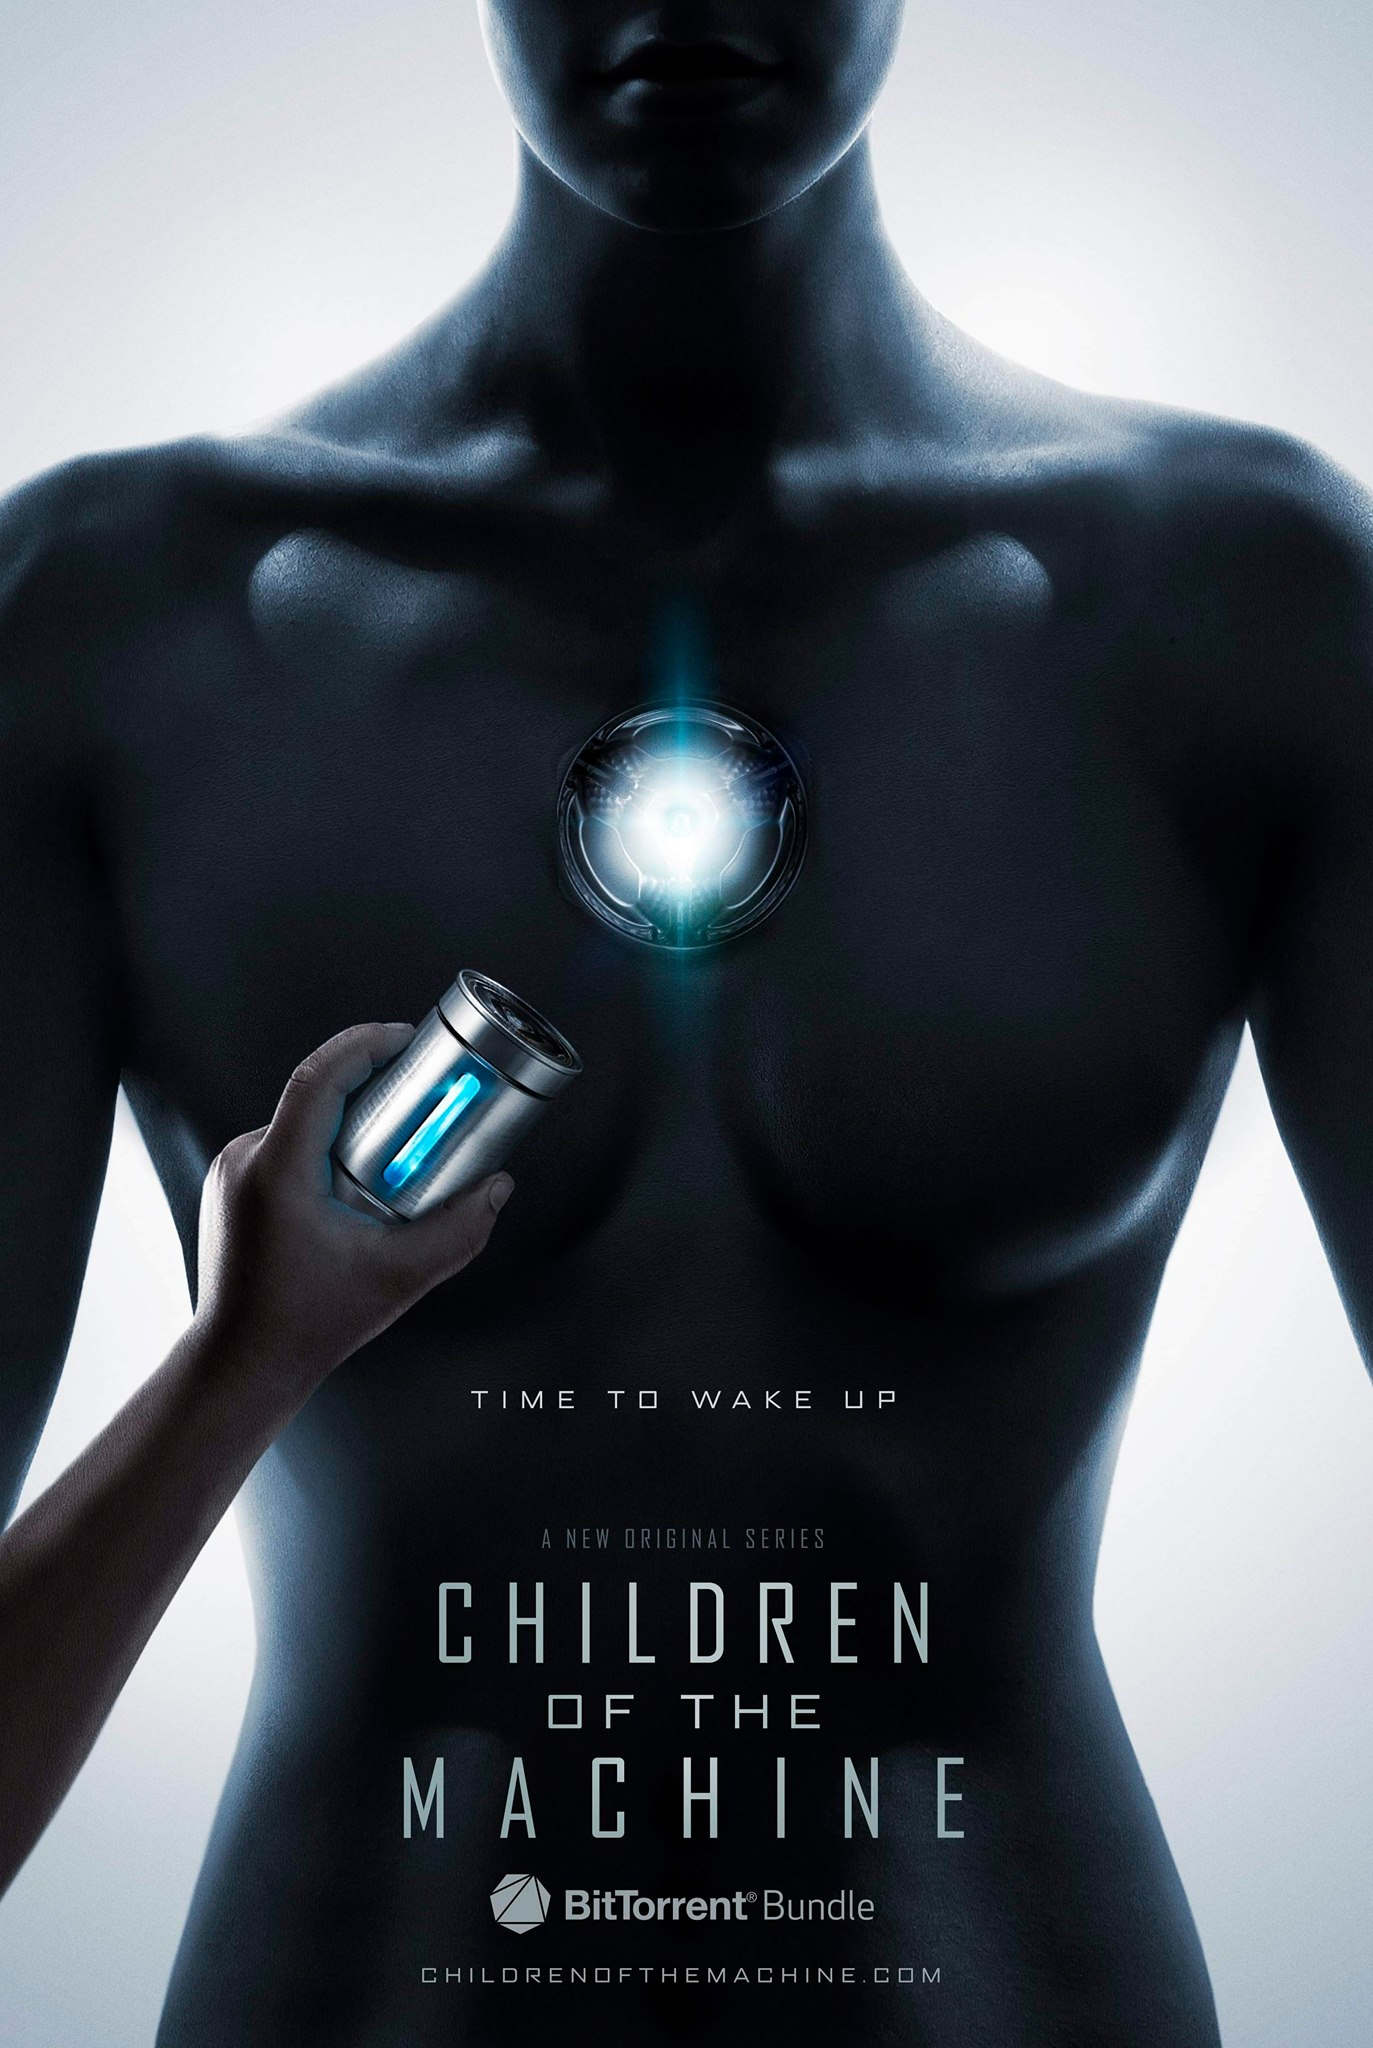 Childrenofthemachine